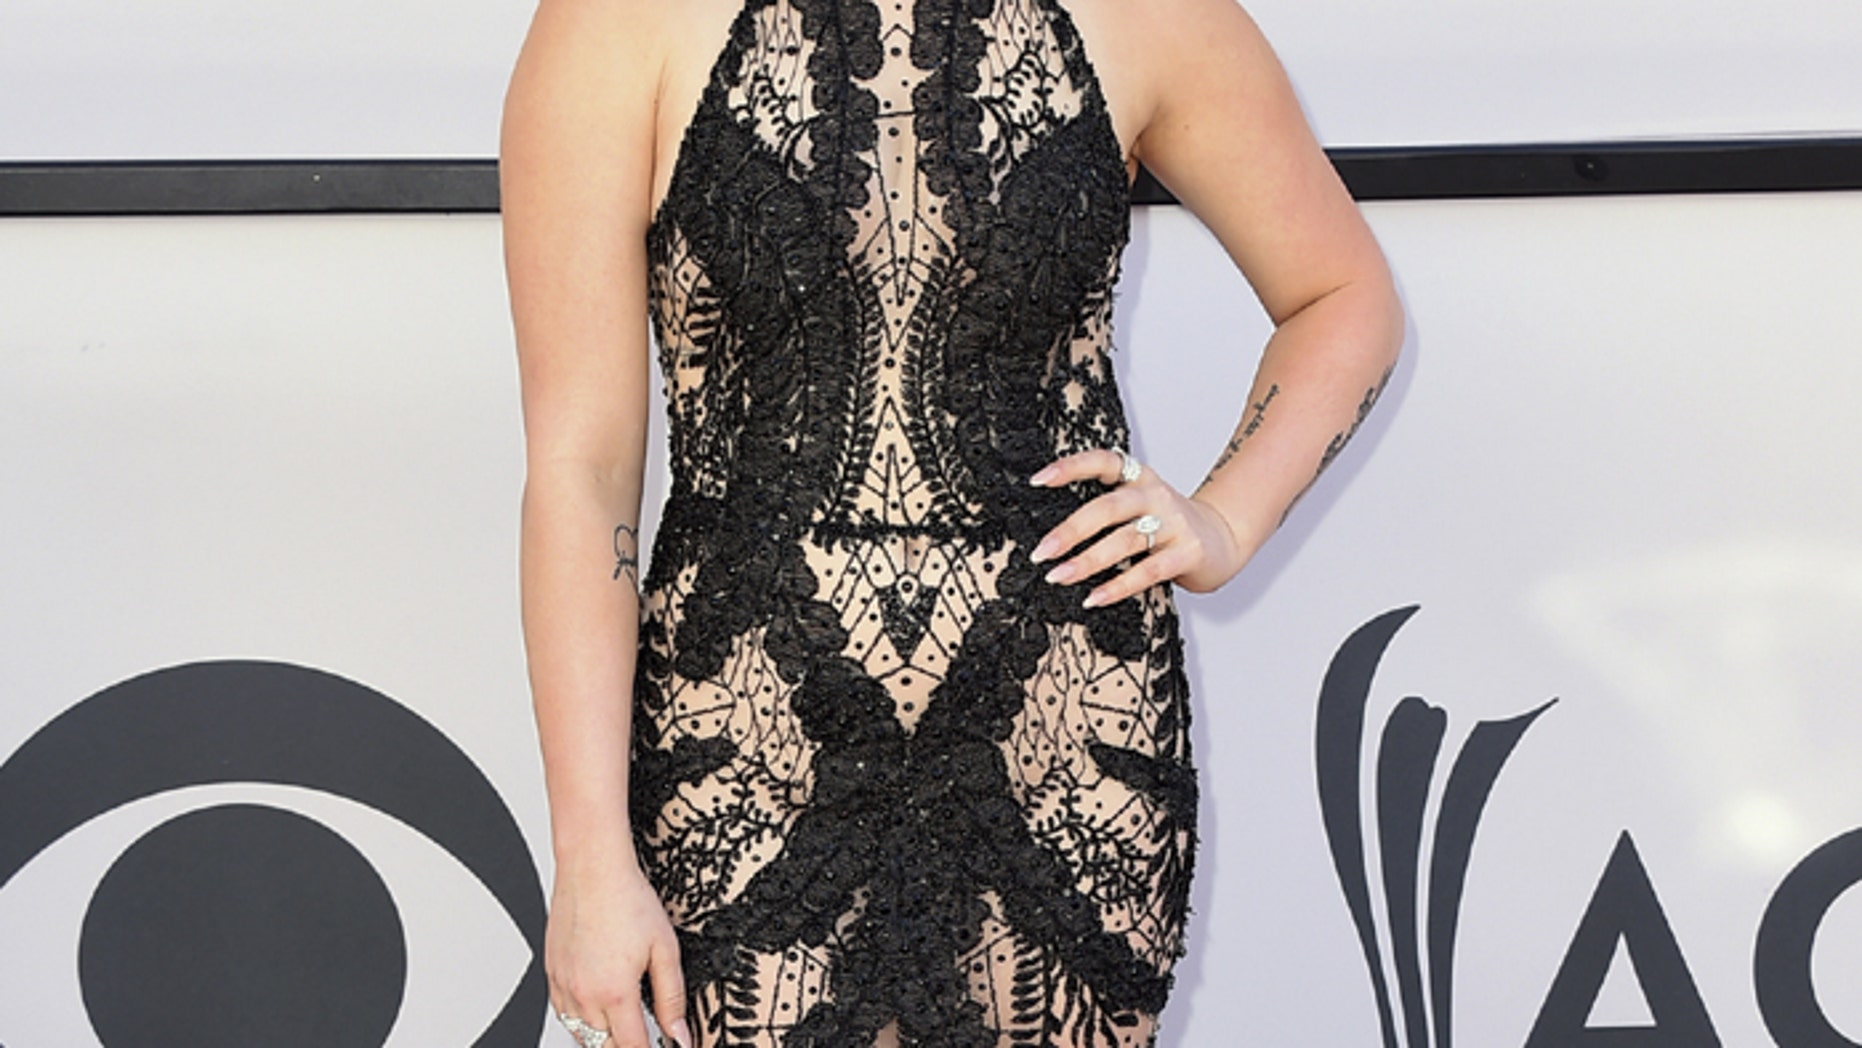 RaeLynn arrives at the 52nd annual Academy of Country Music Awards at the T-Mobile Arena on Sunday, April 2, 2017, in Las Vegas. (Photo by Jordan Strauss/Invision/AP)